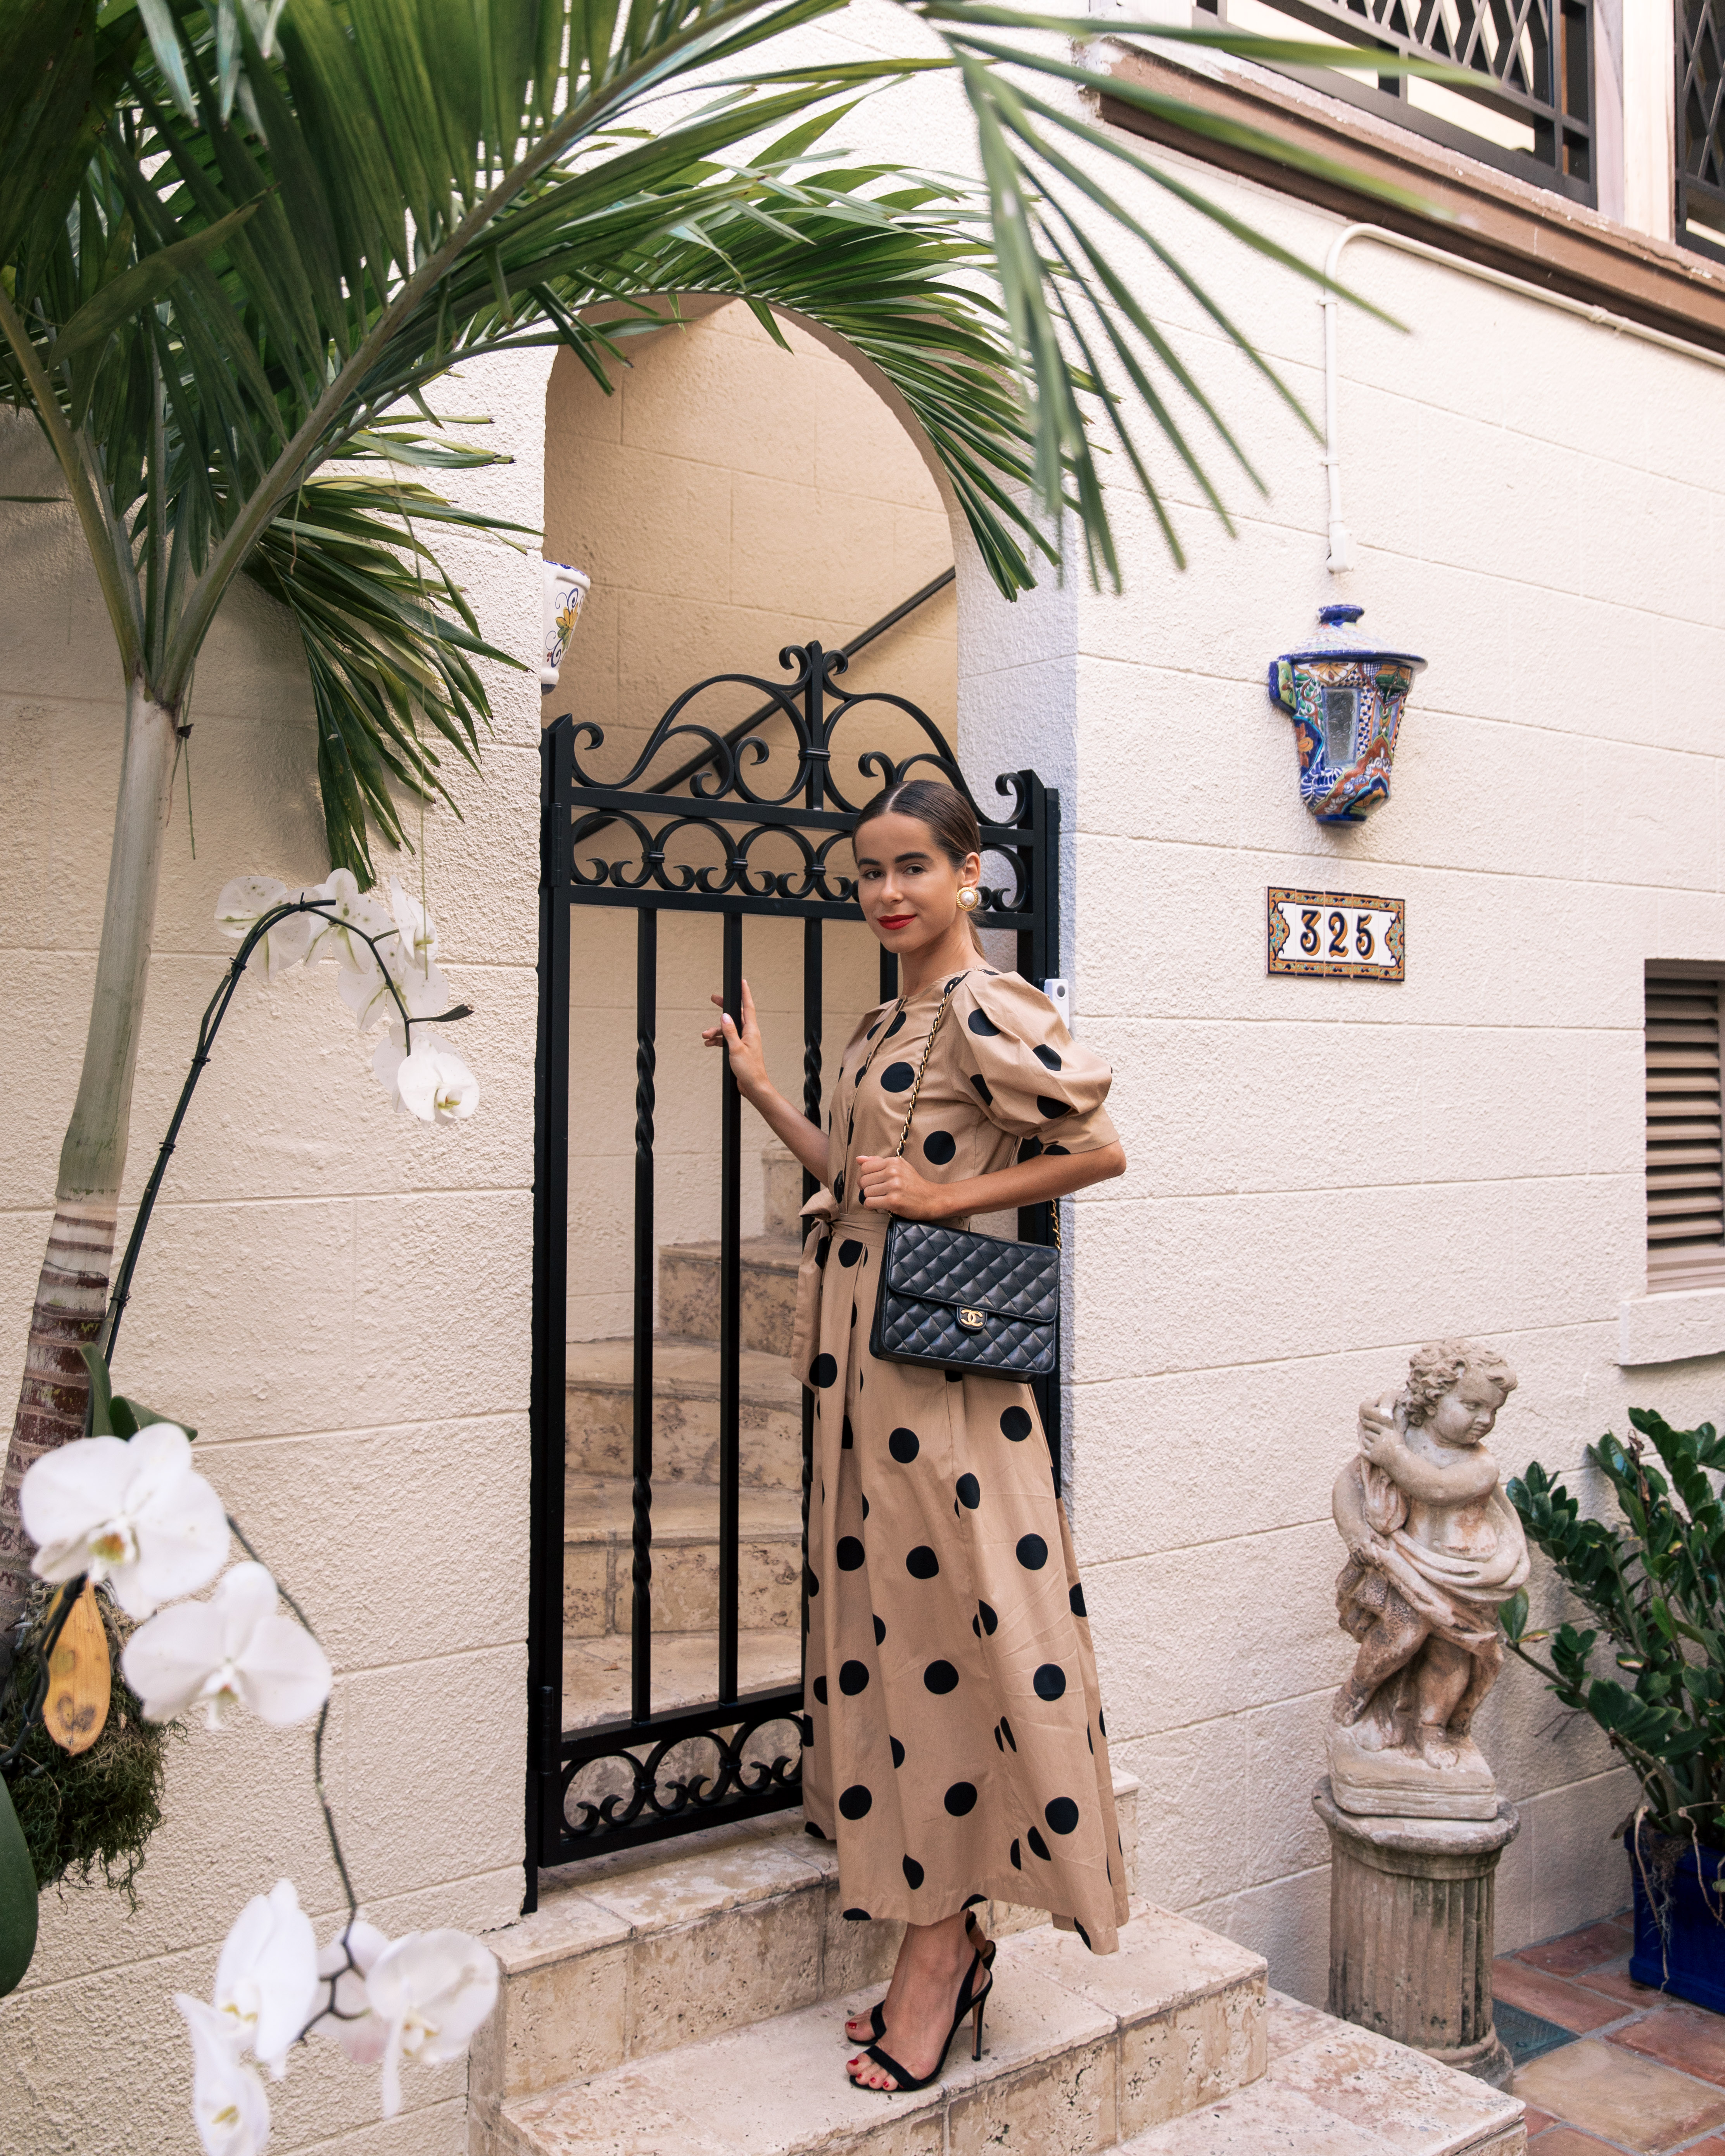 Fashion Blogger Stephanie Hill from The Style Bungalow reveals her Ready for a New Chanel